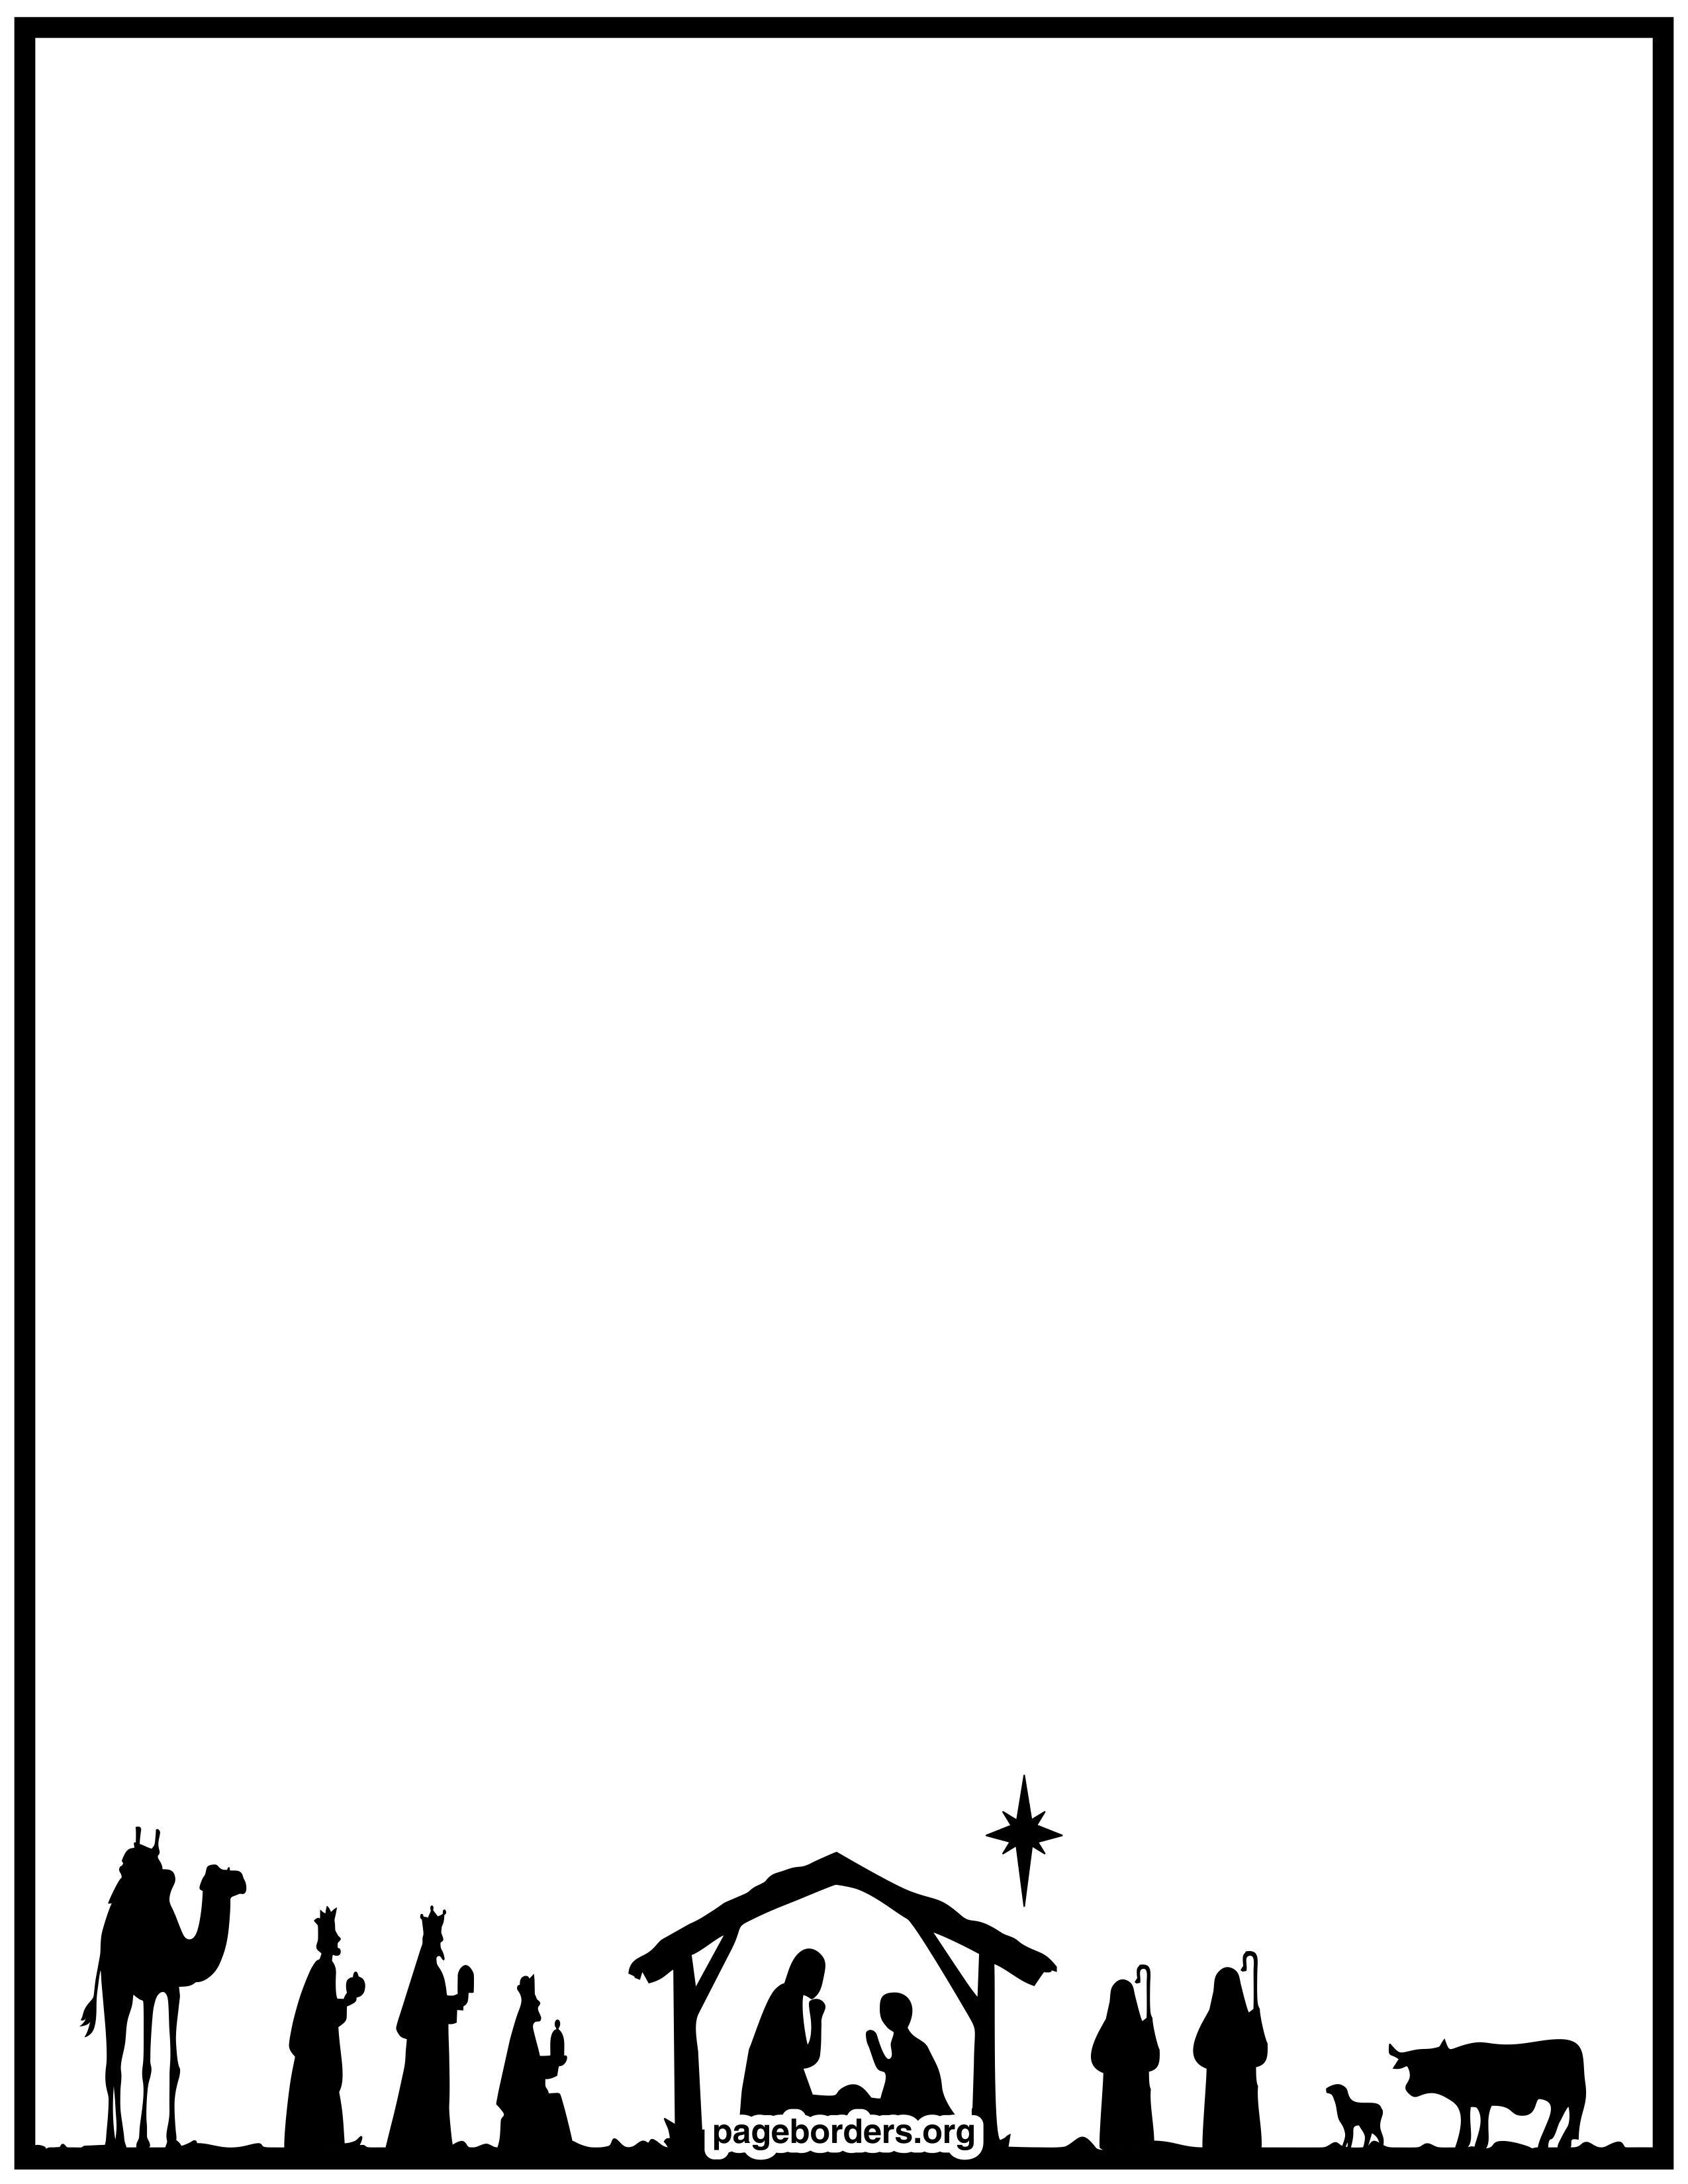 holiday borders clip art page borders and vector graphics nativity border templates including printable border paper and clip art versions file formats include gif jpg pdf and png